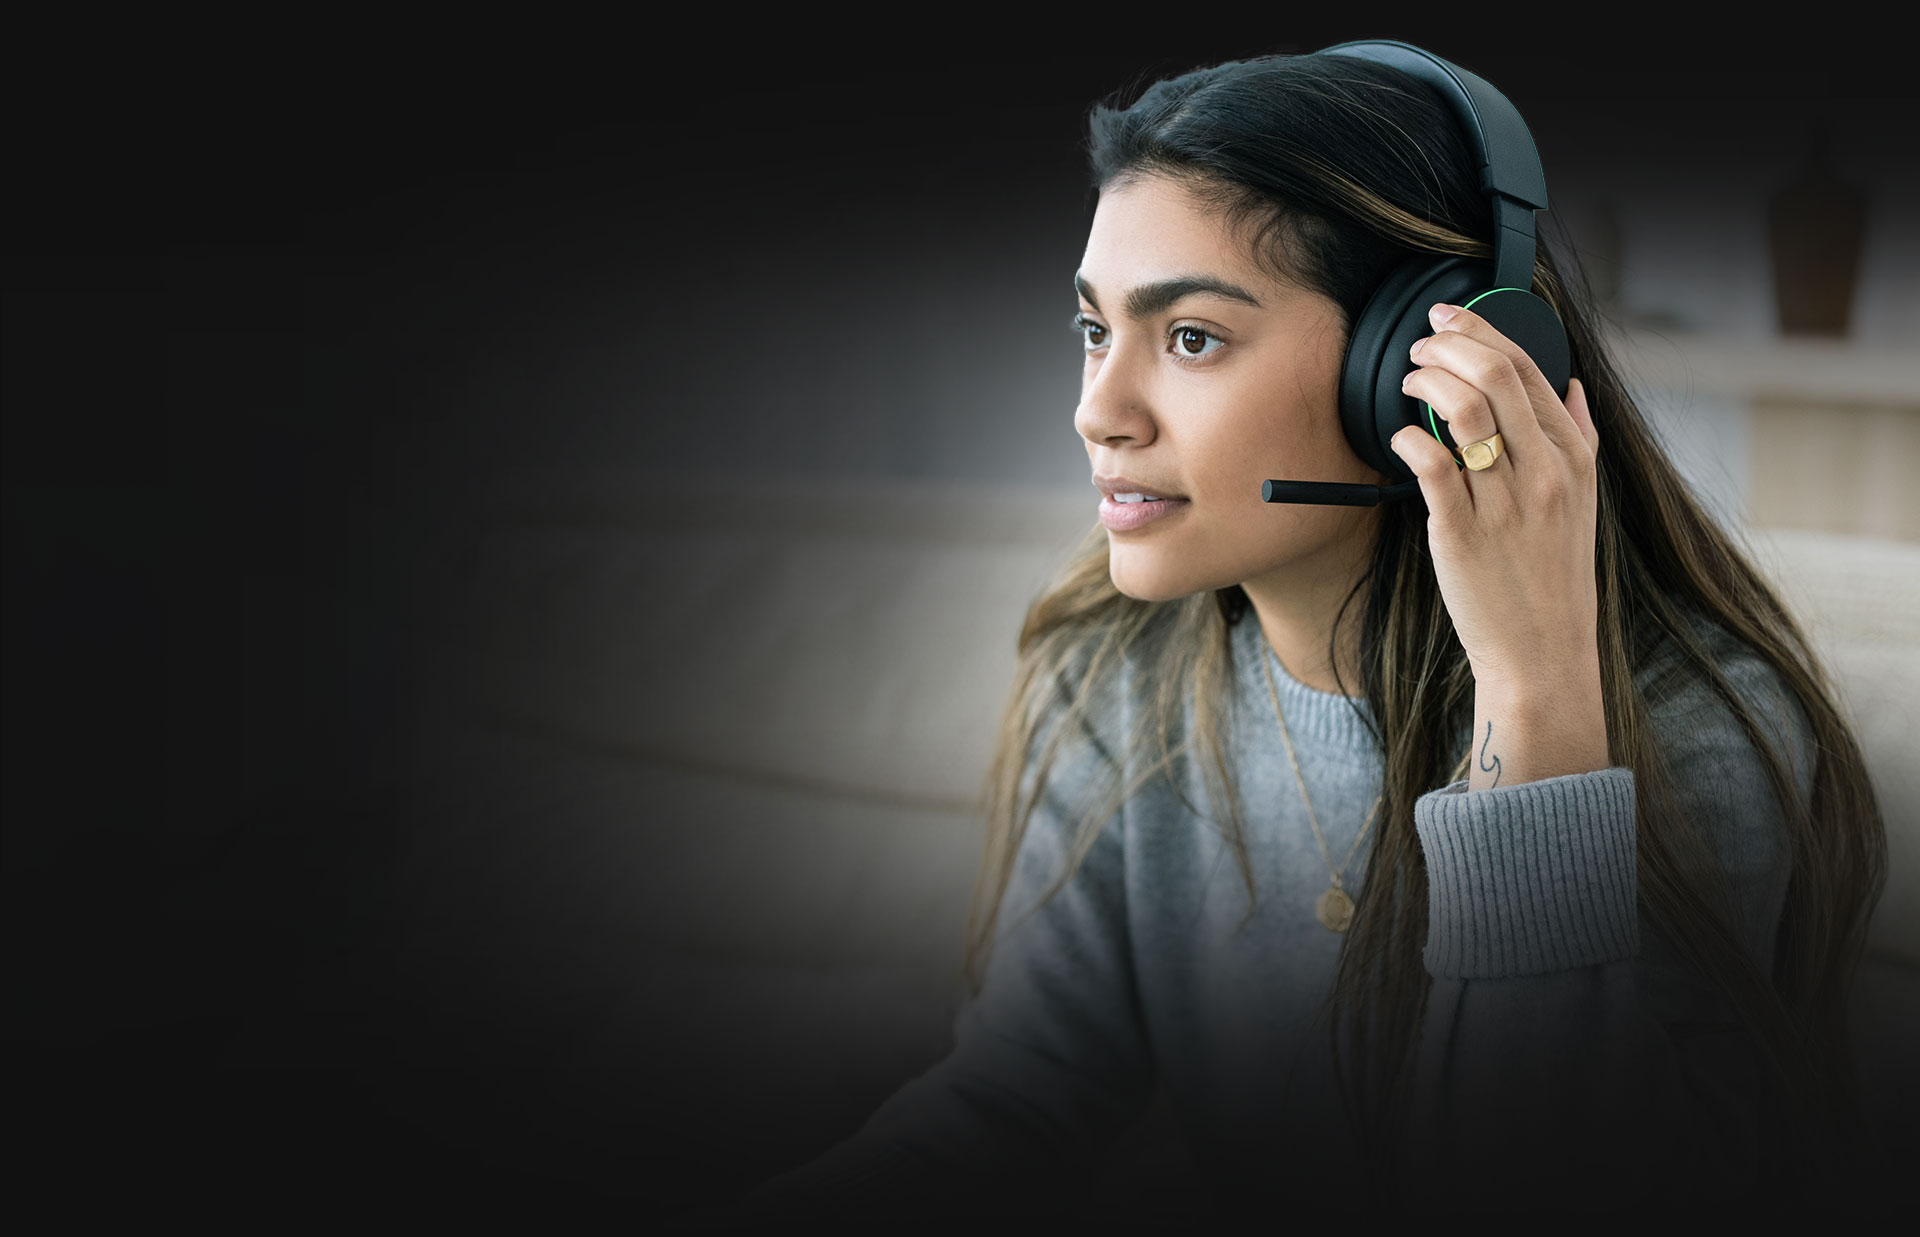 A woman adjusts the volume using the earcup dials on the Xbox Wireless Headset.